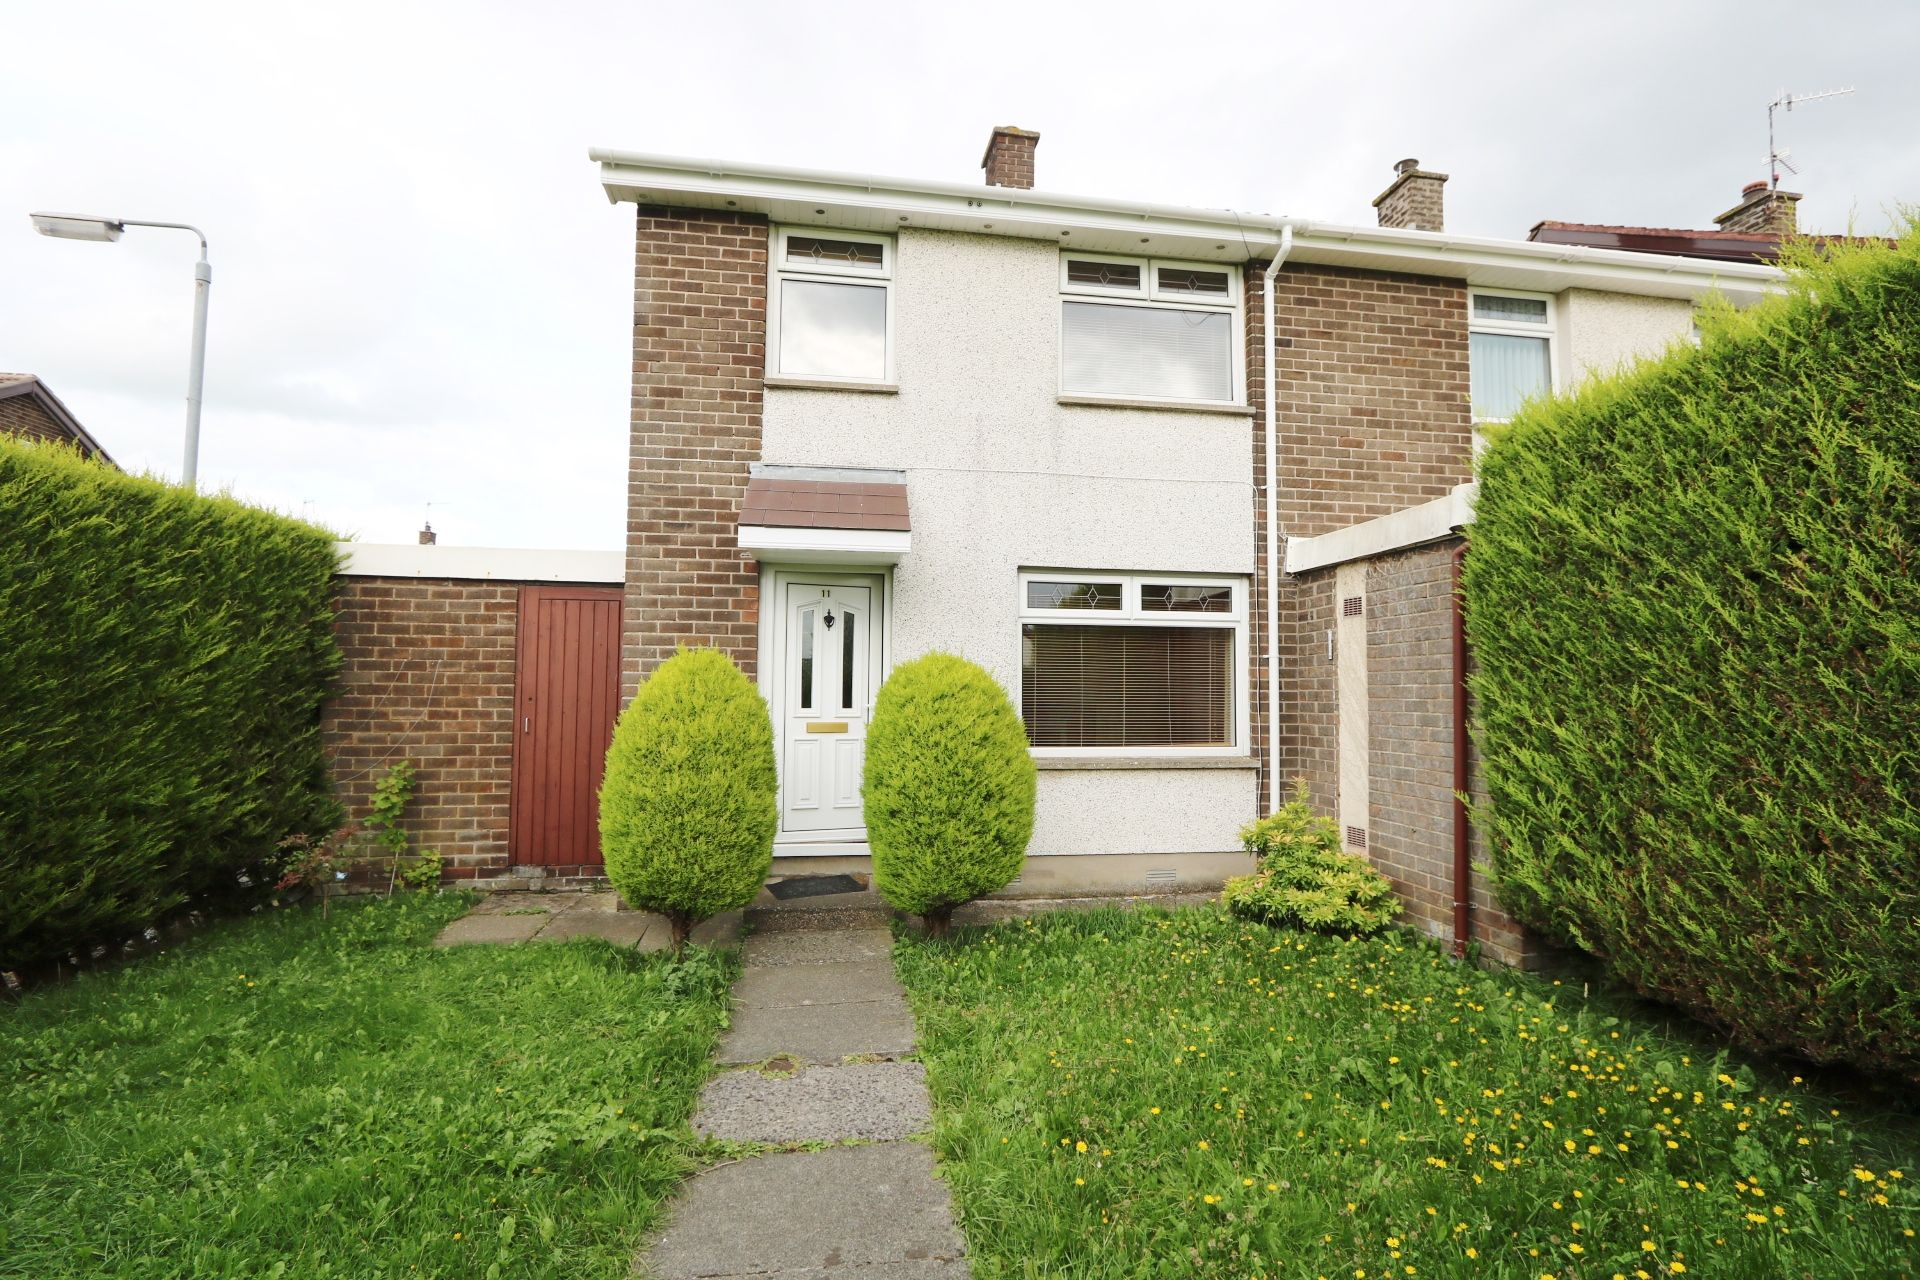 3 bedroom end terraced house Let Agreed in Antrim - Property photograph